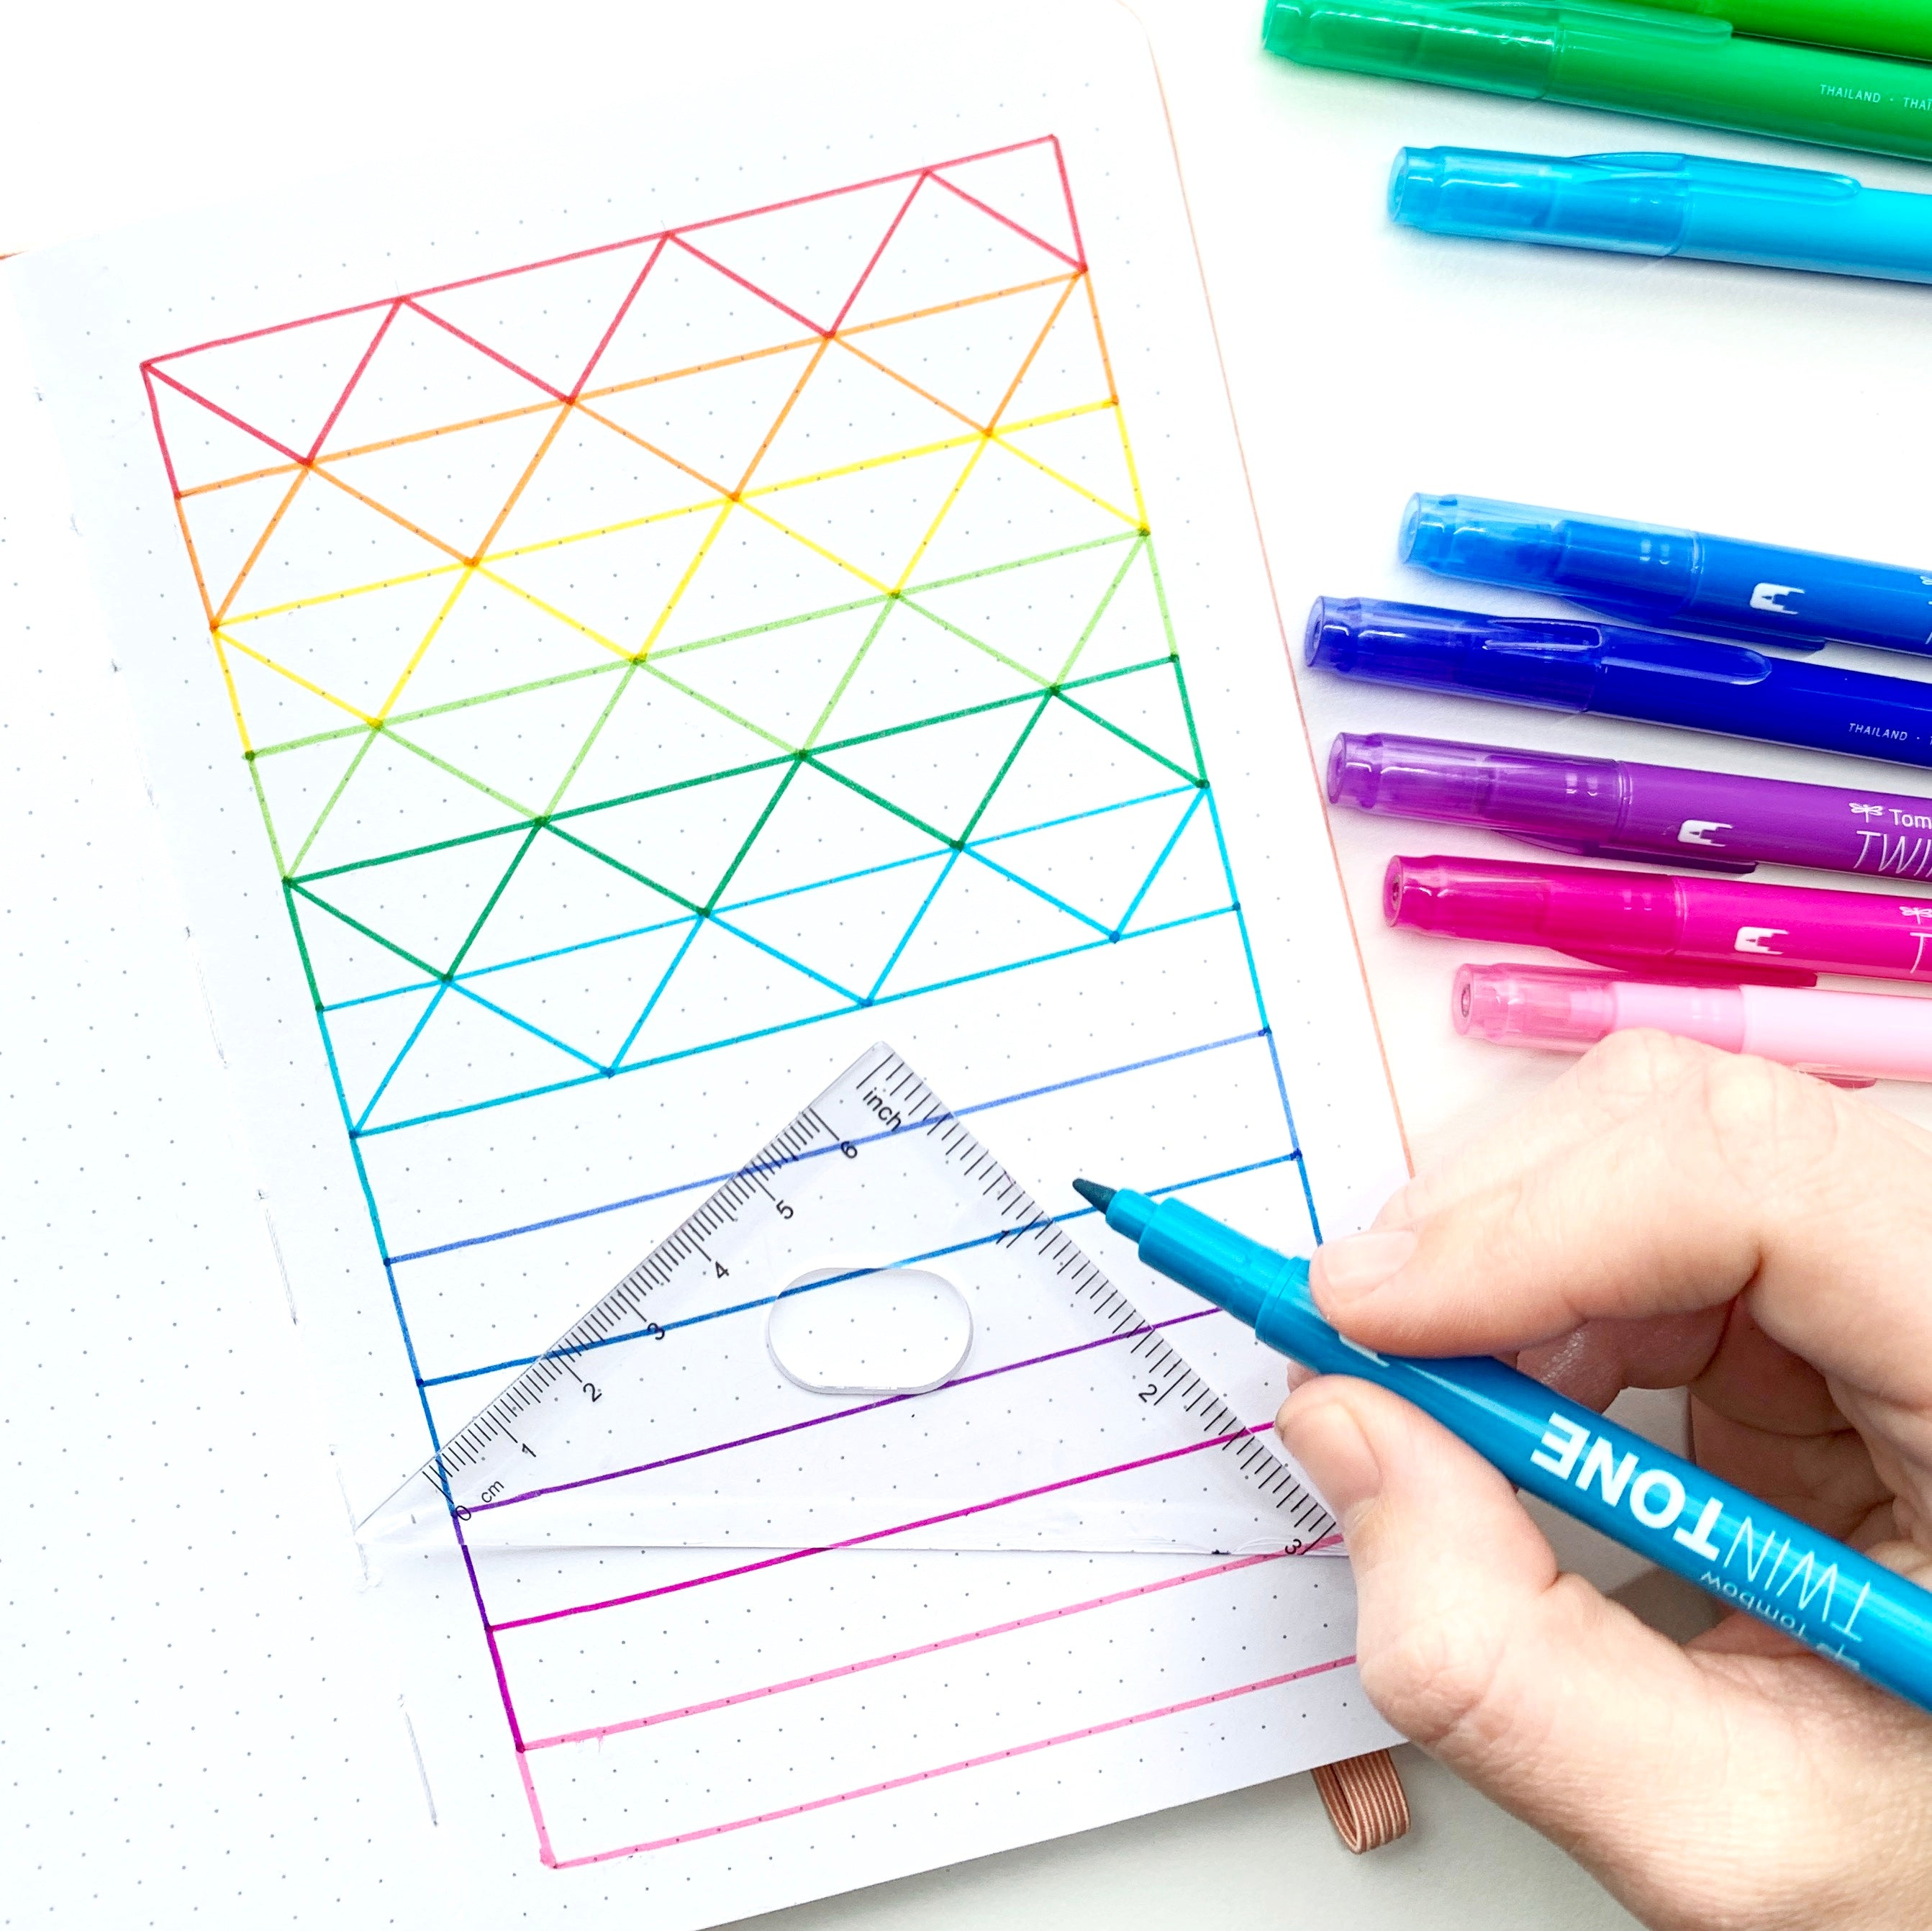 Learn how to create a rainbow pattern in your dot grid notebook with Adrienne from @studio80design